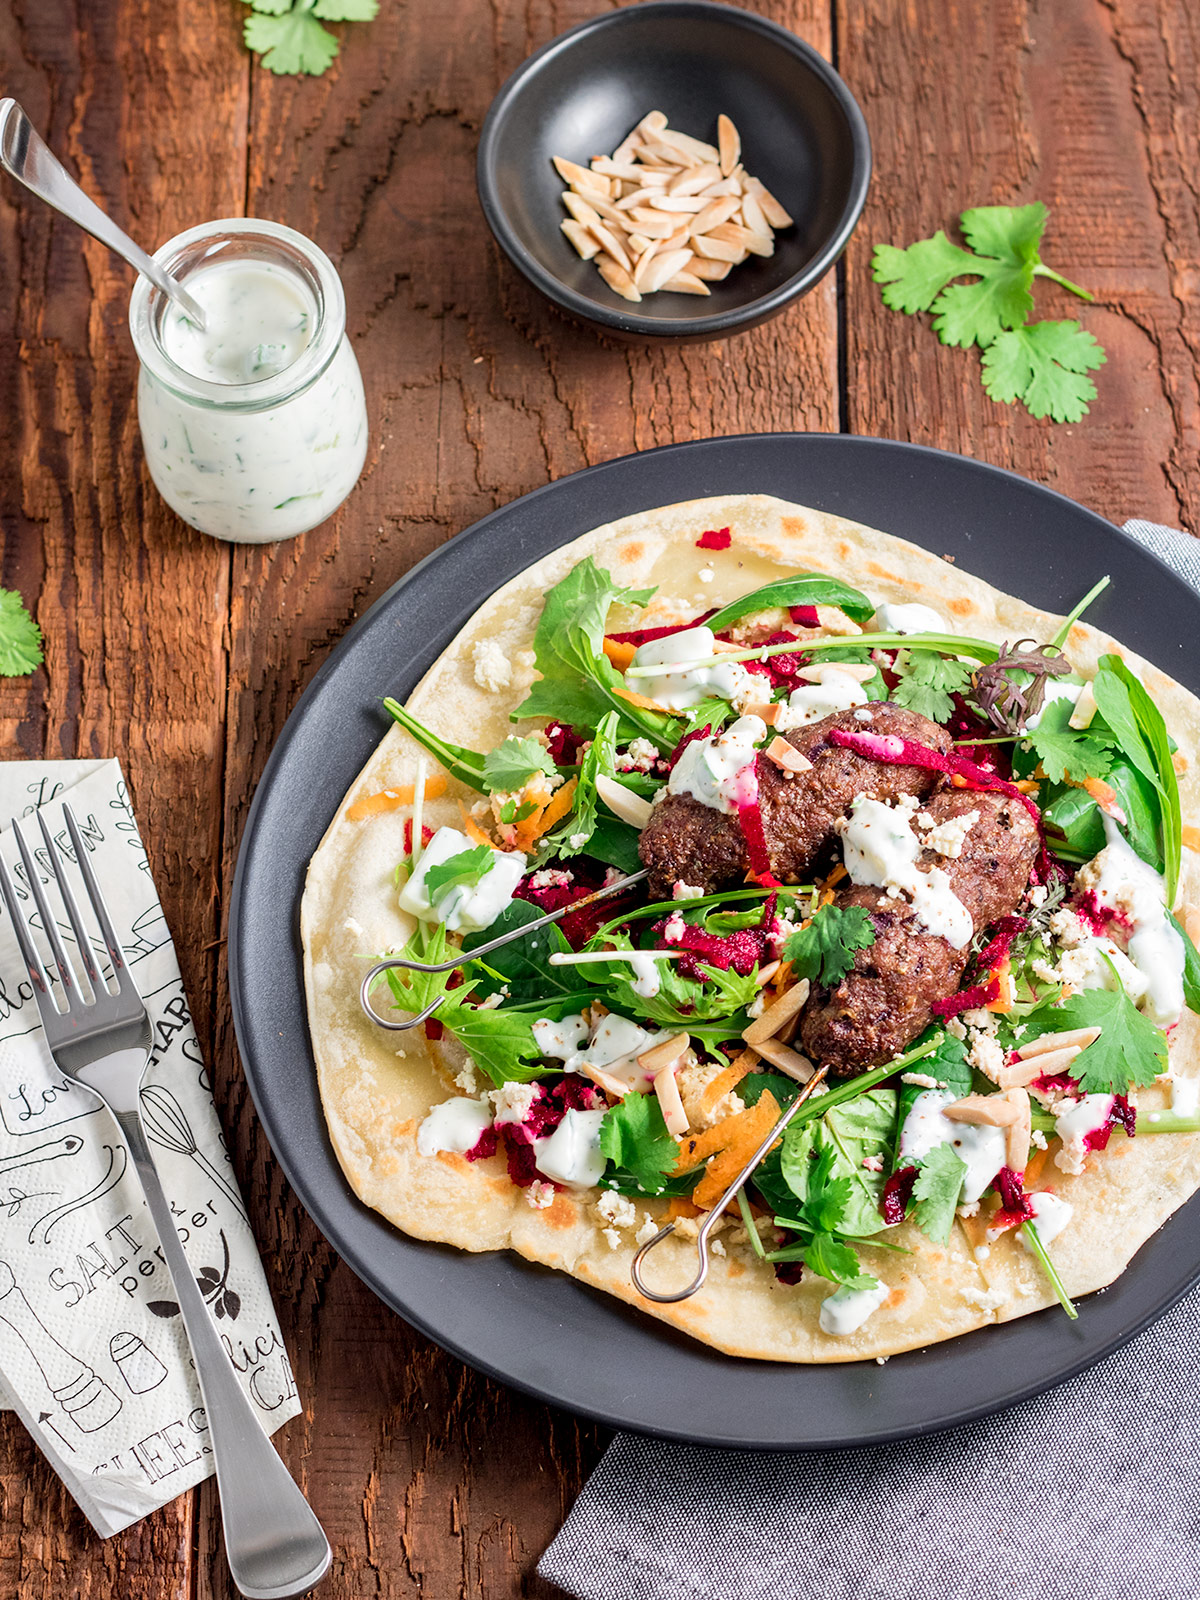 These lamb kofta flatbreads are way tastier than any takeaway kebab. The extra effort required to make the flatbreads yourself is definitely worth it!